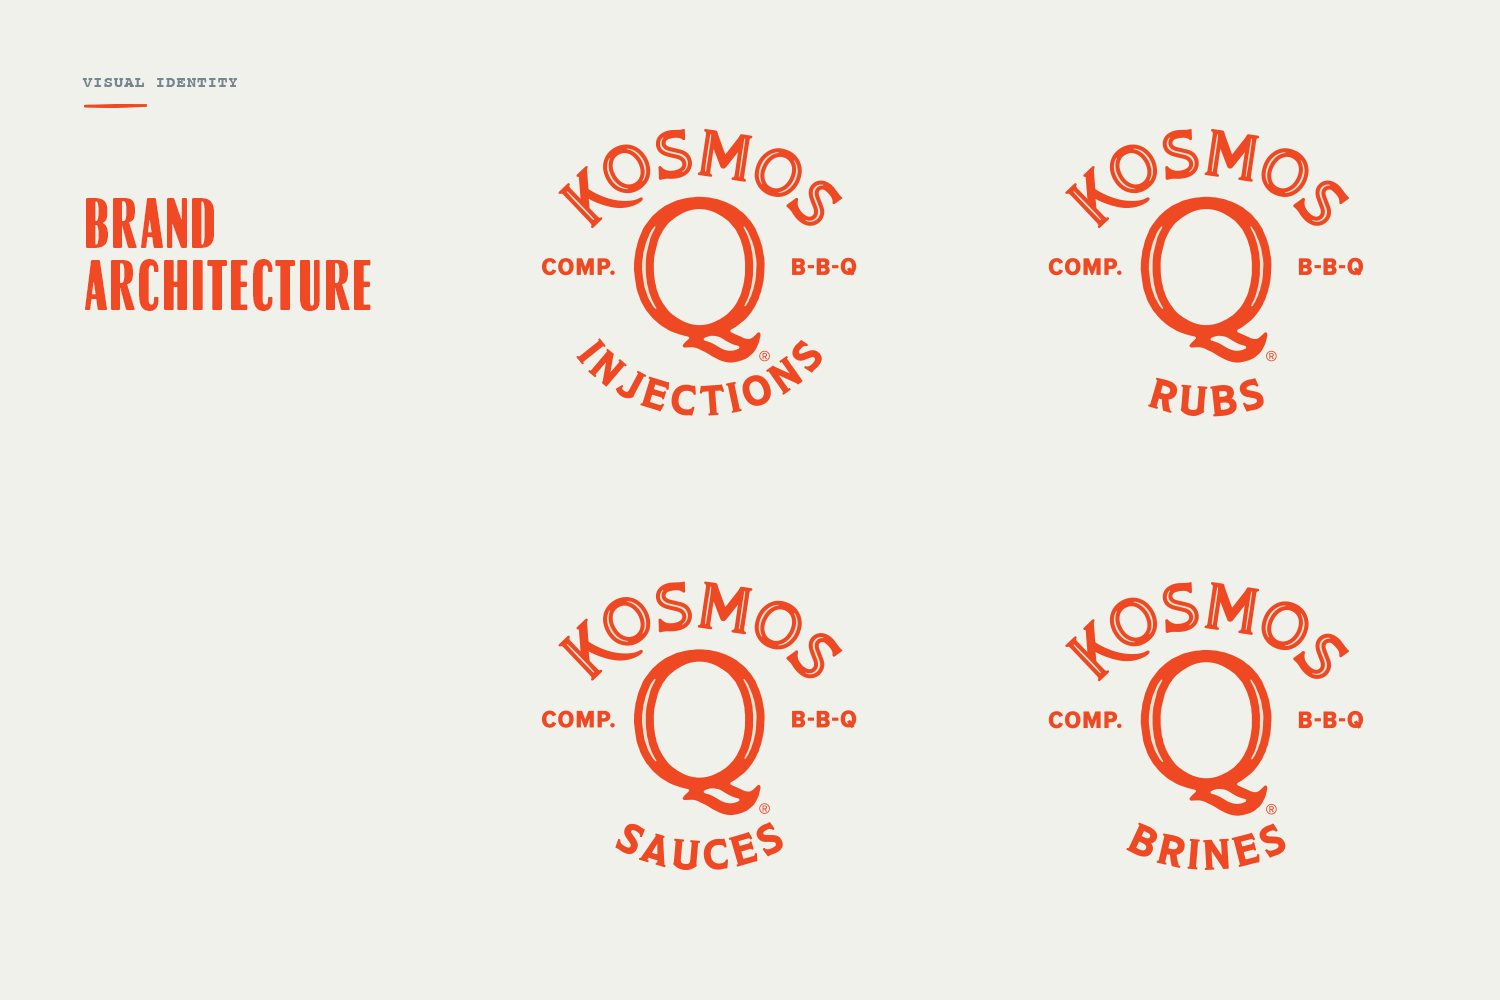 kosmosq_visual identity_brand architecture.png